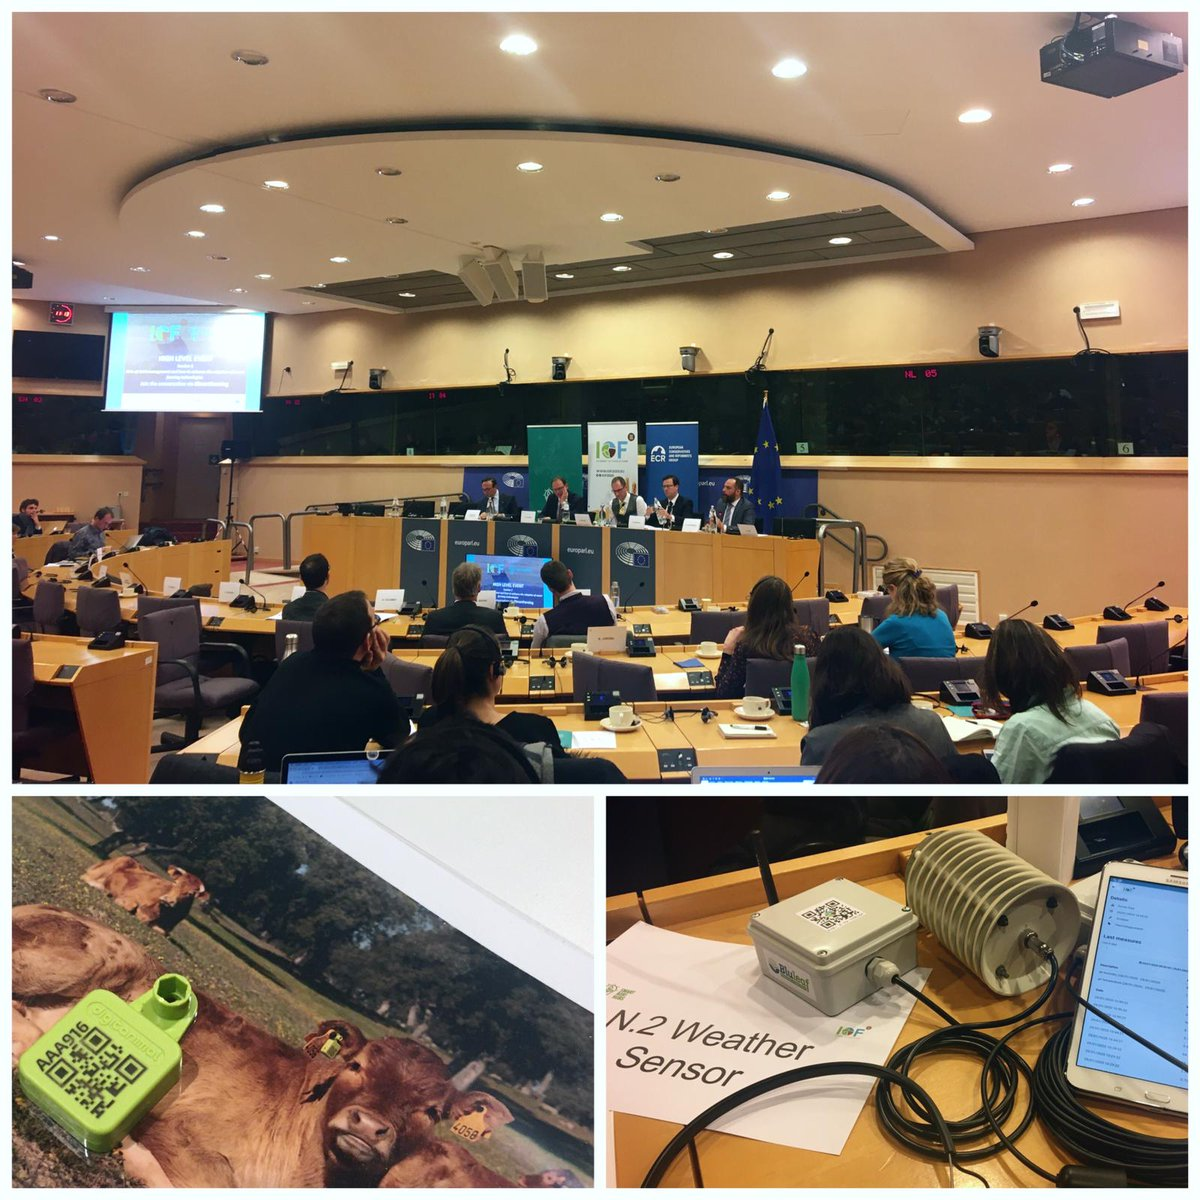 """Today #TRANSFARM team participated """"#SmartFarming: #digitalization of #agriculture & vision for the new #CAP"""" high-level conference at #EUParliament, where many important insights on #PF were offered. We could, also, see ourselves some of the actual #technologic #tools in use!pic.twitter.com/kU5E1CYzC1"""